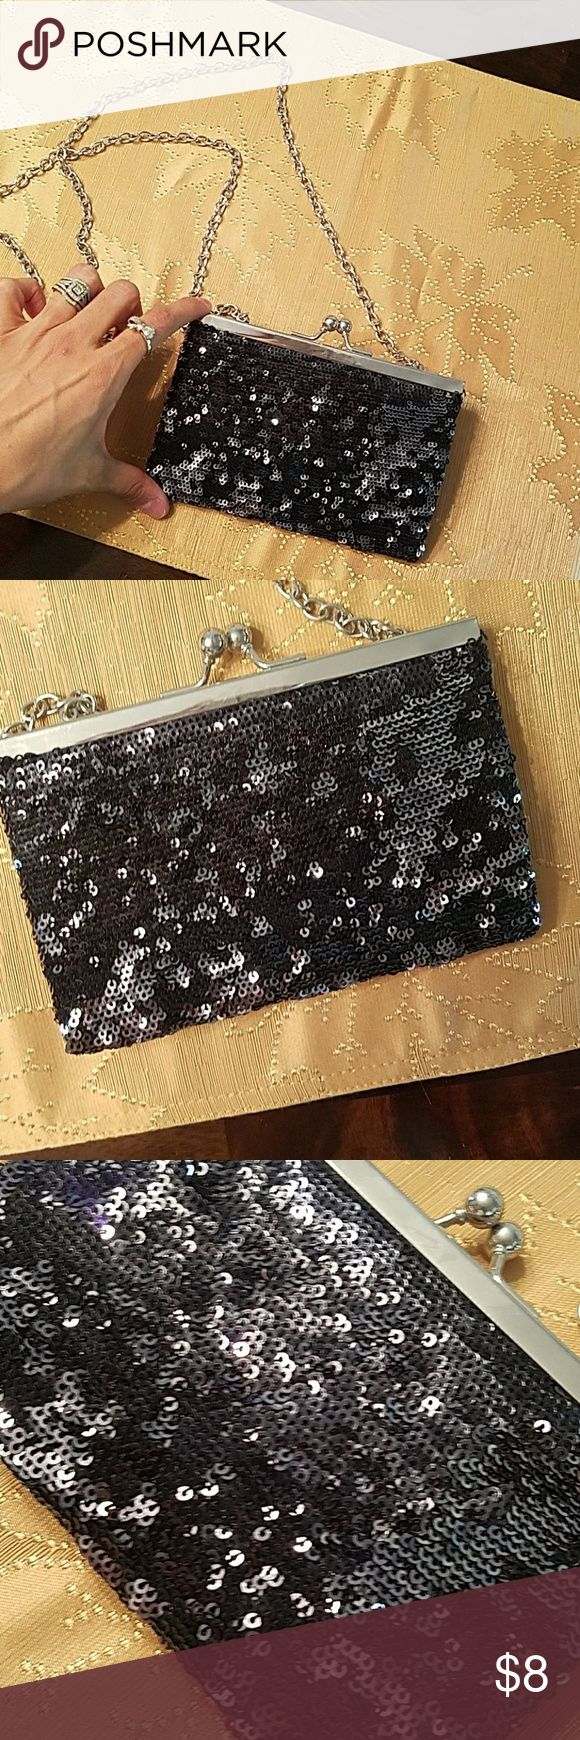 Adorable sequin clutch Small sequined clutch with chain.  Not detachable. Small inside.  Never used Great for night out! Bags Clutches & Wristlets